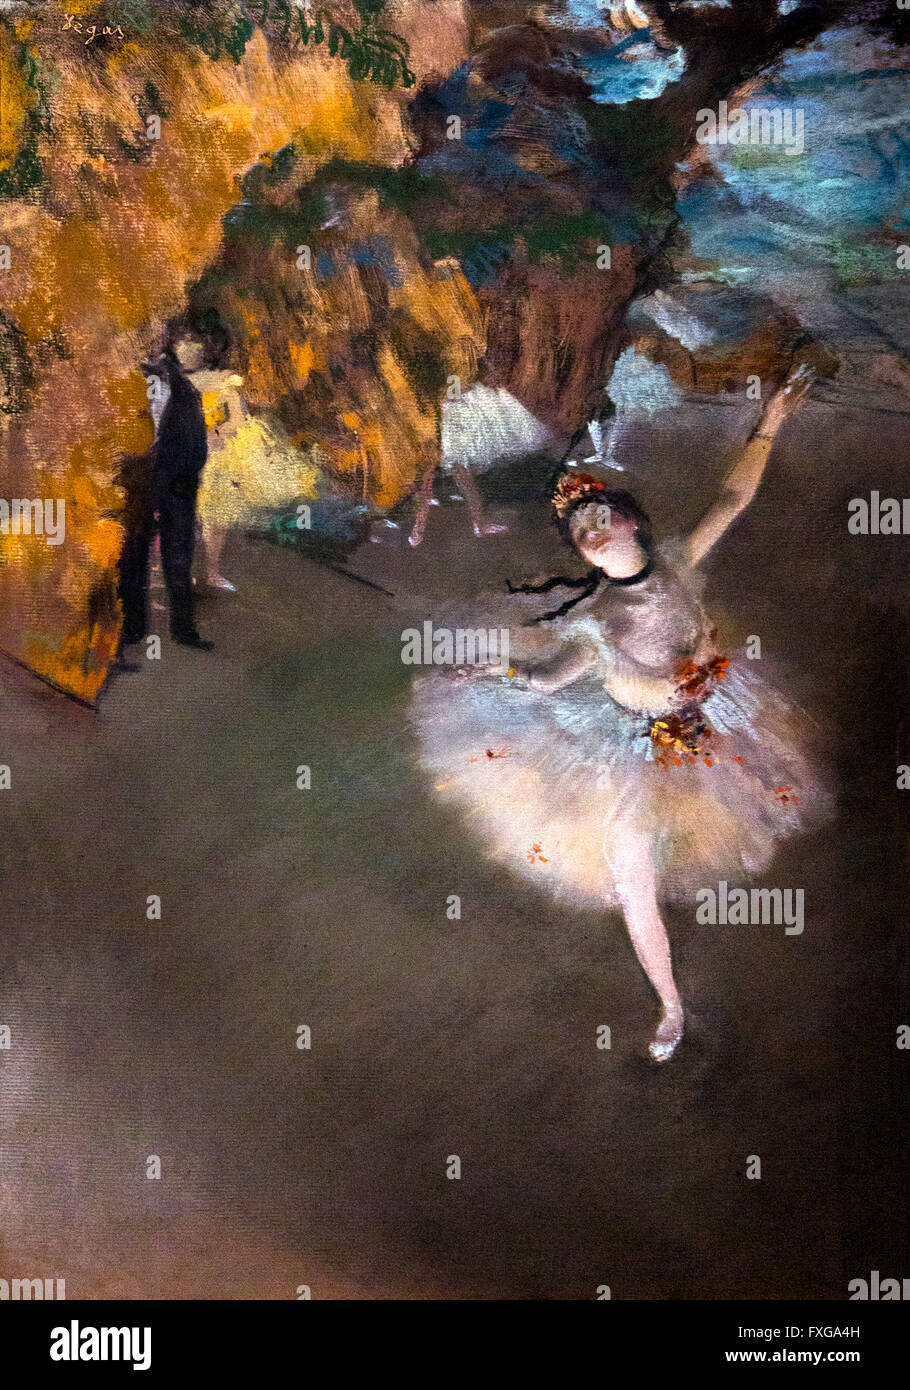 Dancer on the Stage, Ballet, L'Etoile, by Edgar Degas, circa 1876, Musee D'Orsay Art Gallery, Paris, France, - Stock Image